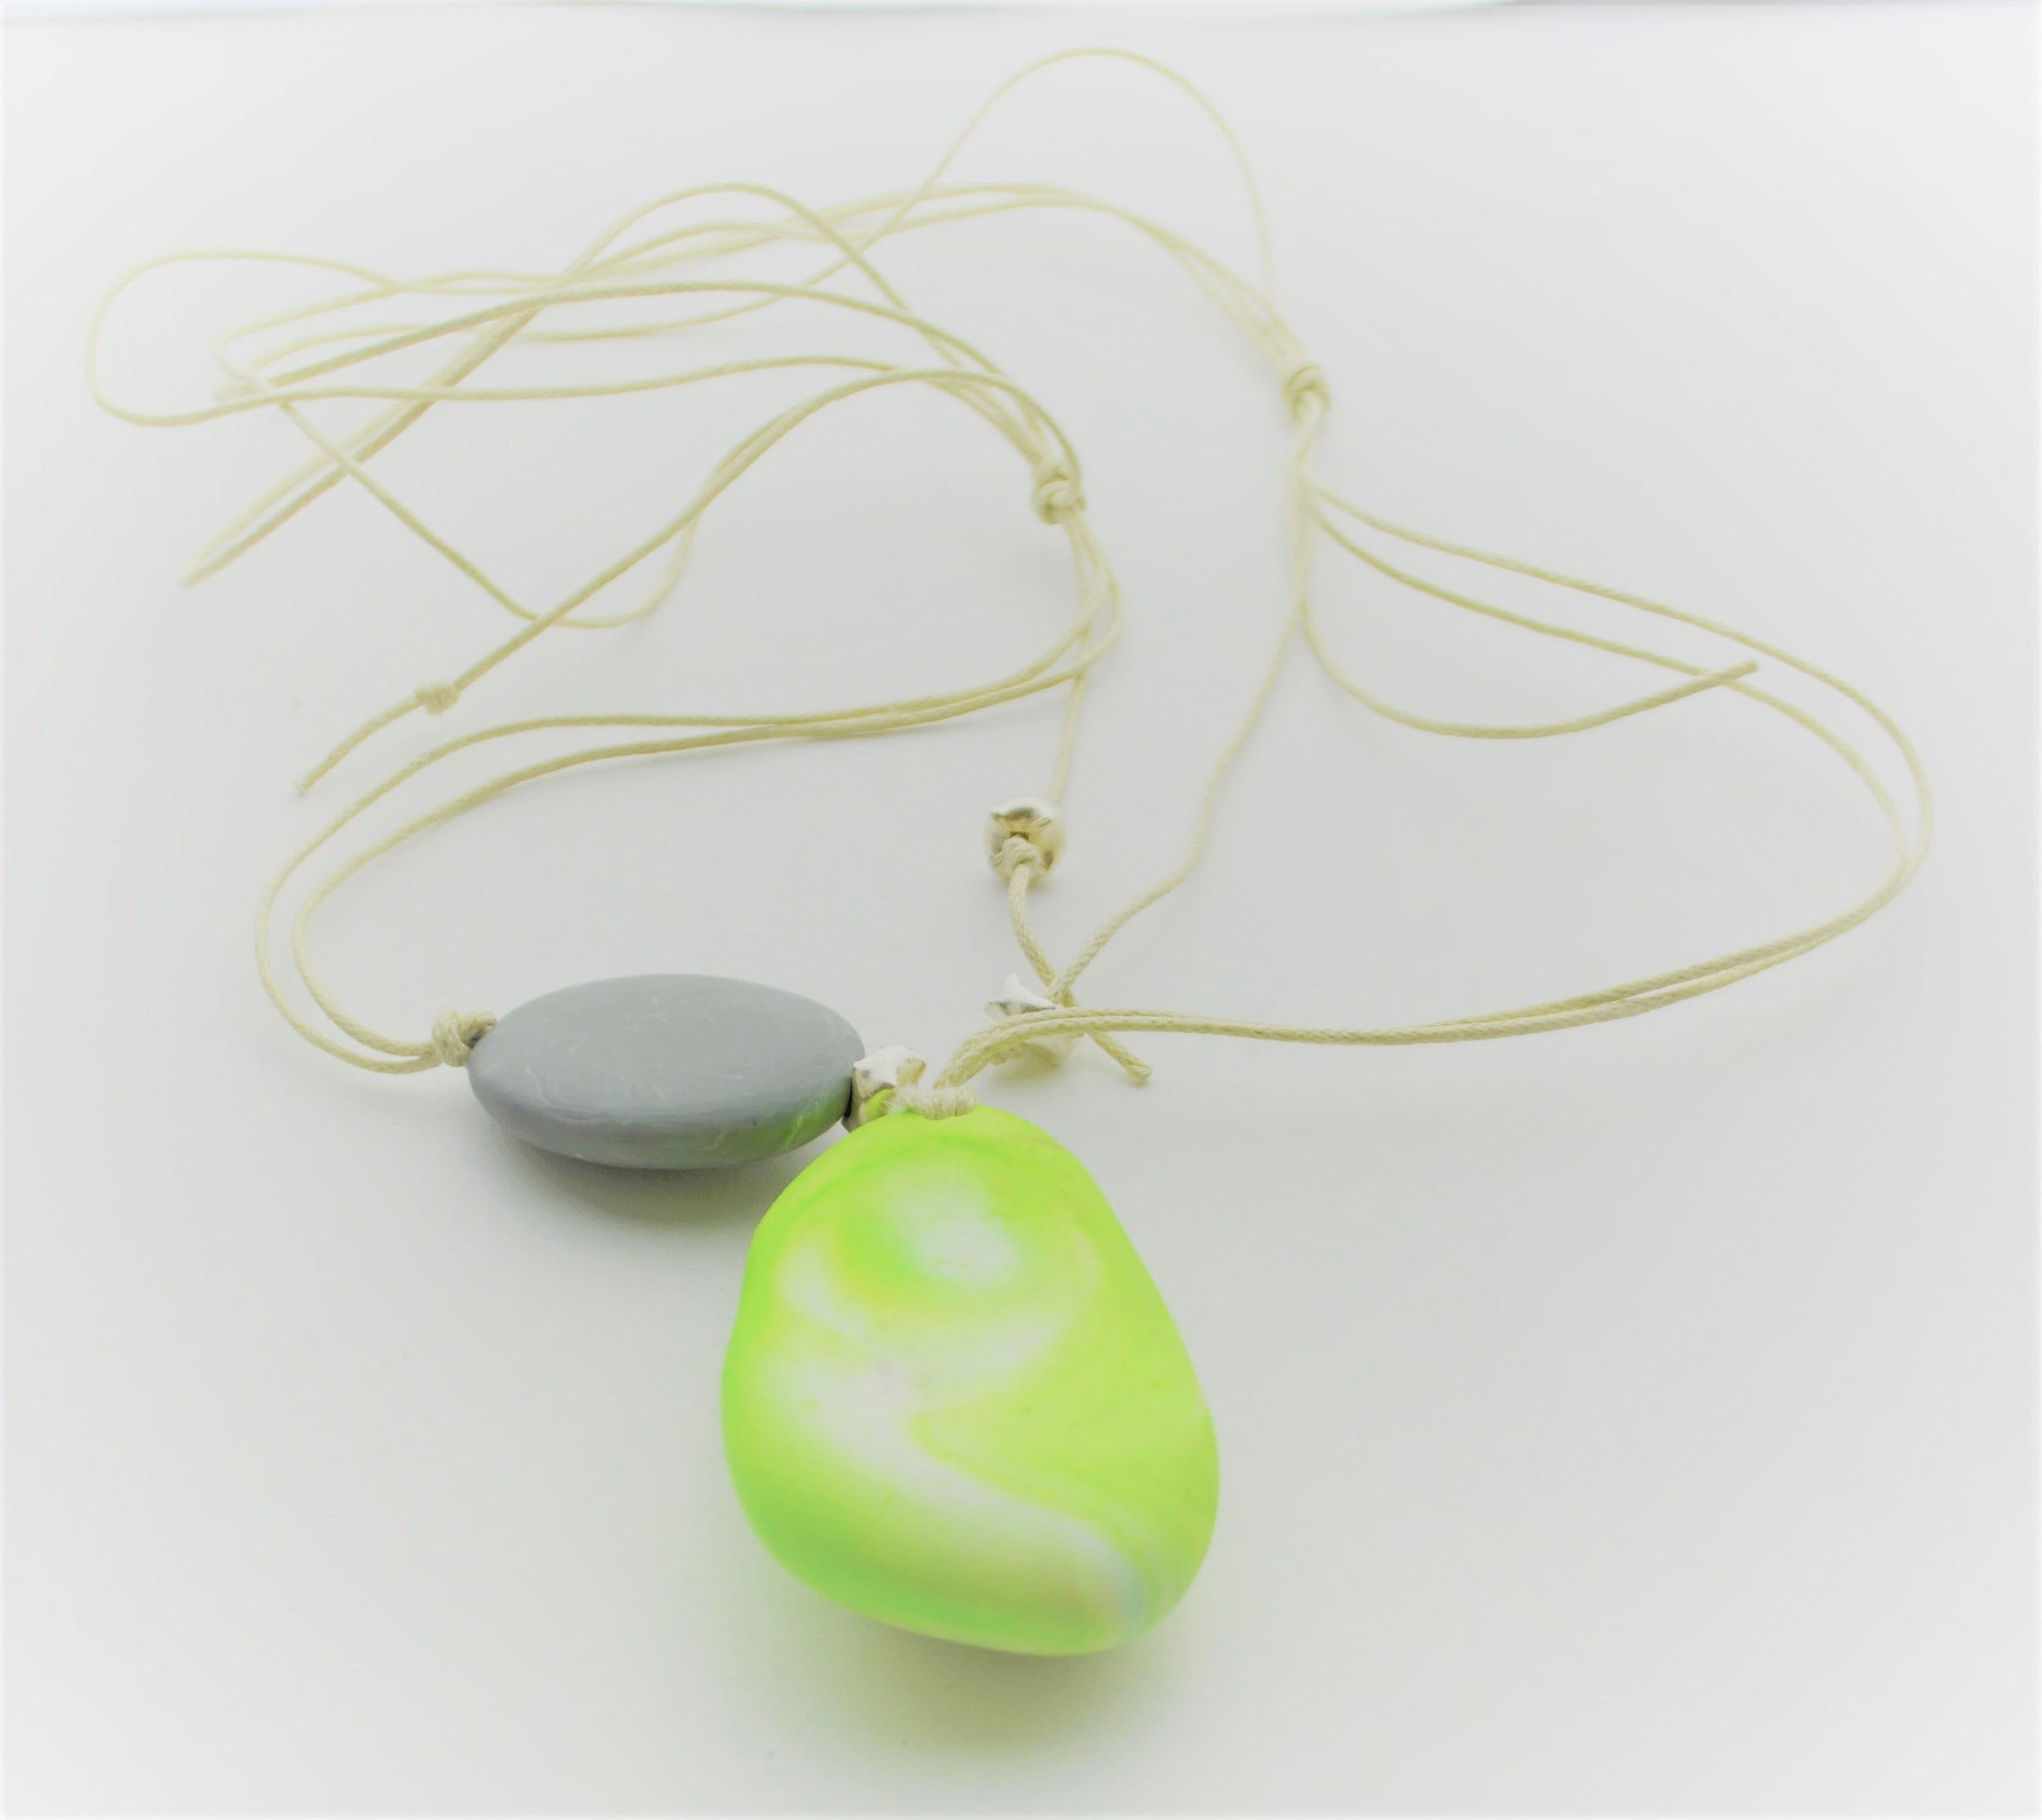 Contemporary handmade adjustable marbled lime green resin pendant